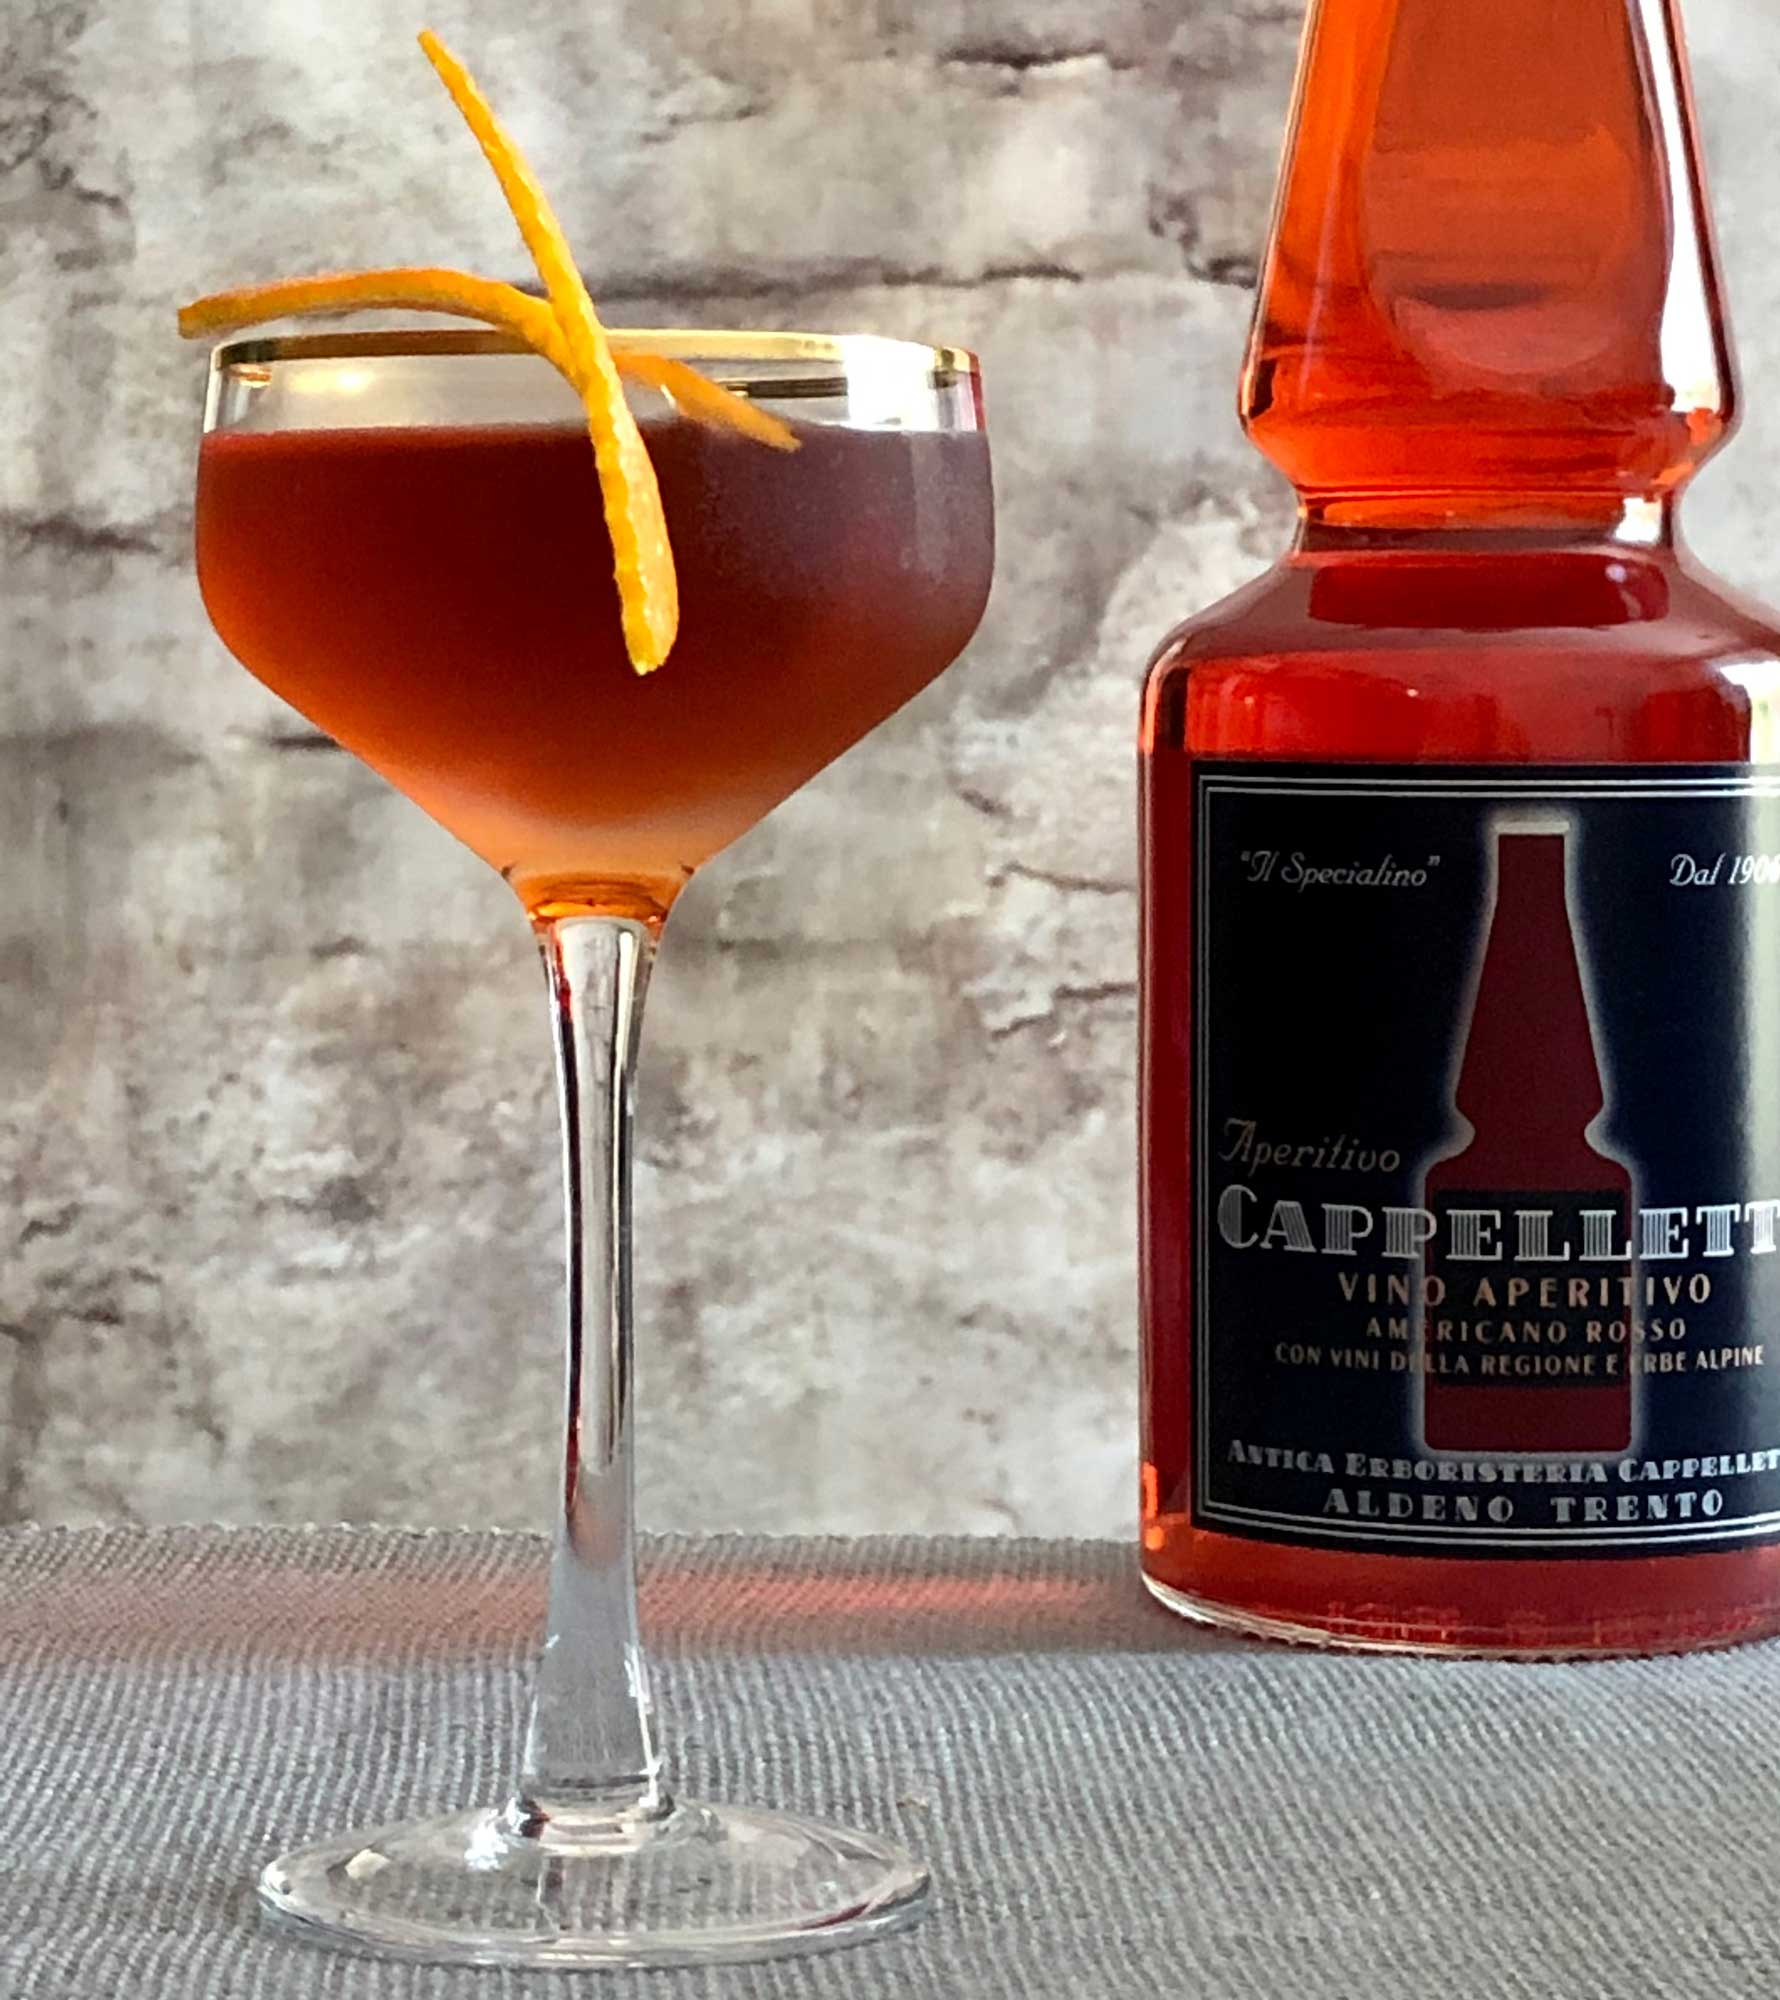 An example of the El Boulevard, the mixed drink (cocktail) featuring añejo tequila, Aperitivo Cappelletti, and Dolin Rouge Vermouth de Chambéry; photo by Lee Edwards